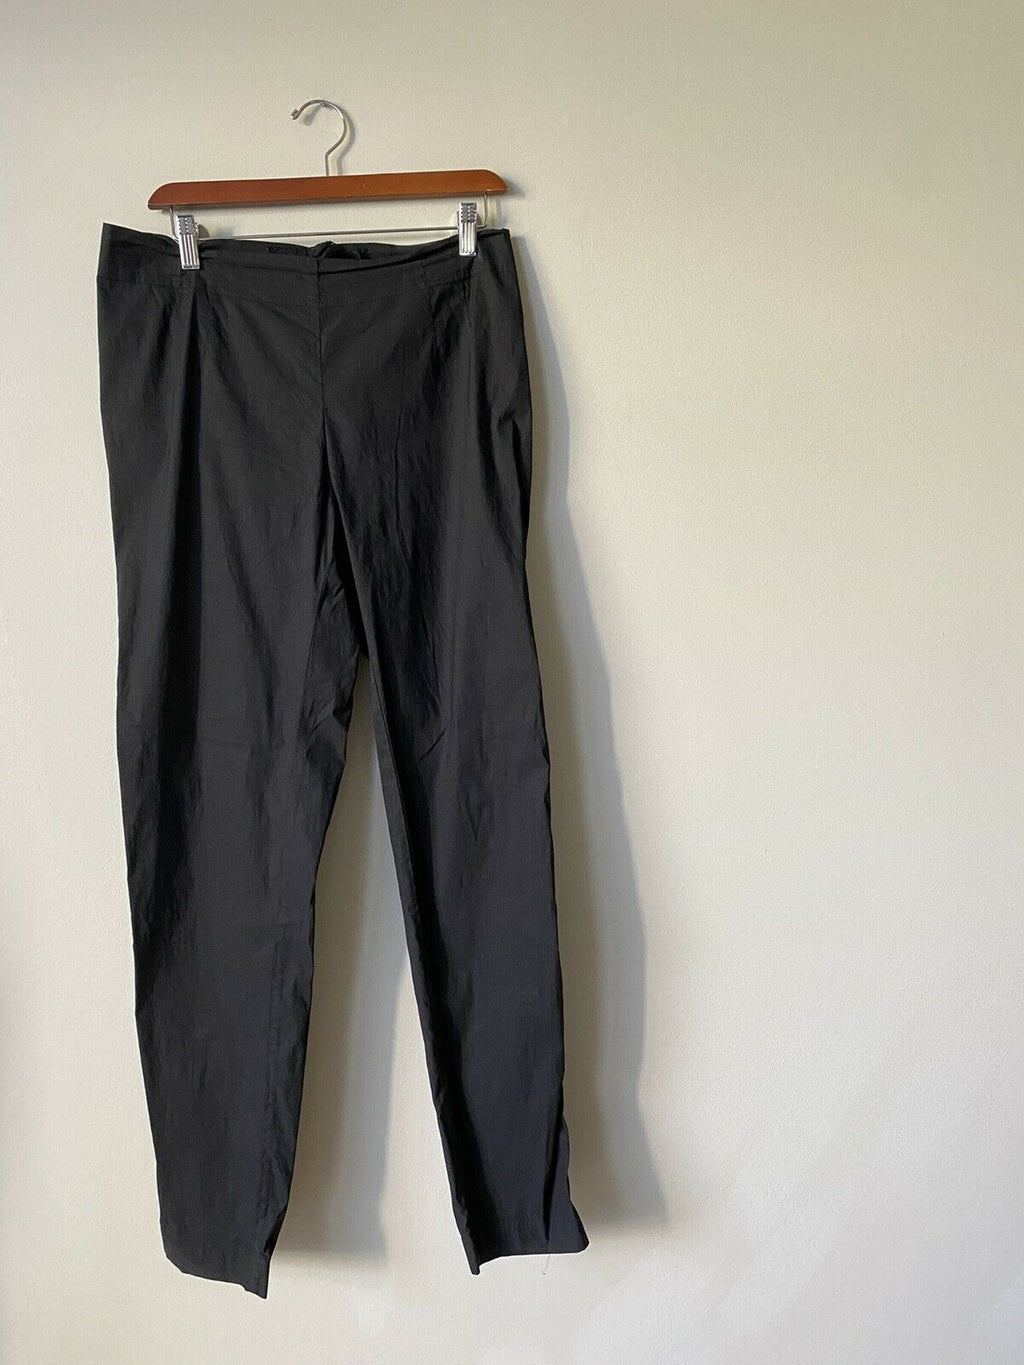 Rundholz Black Label Women's Large Black Trousers Stretch German Designer Pants